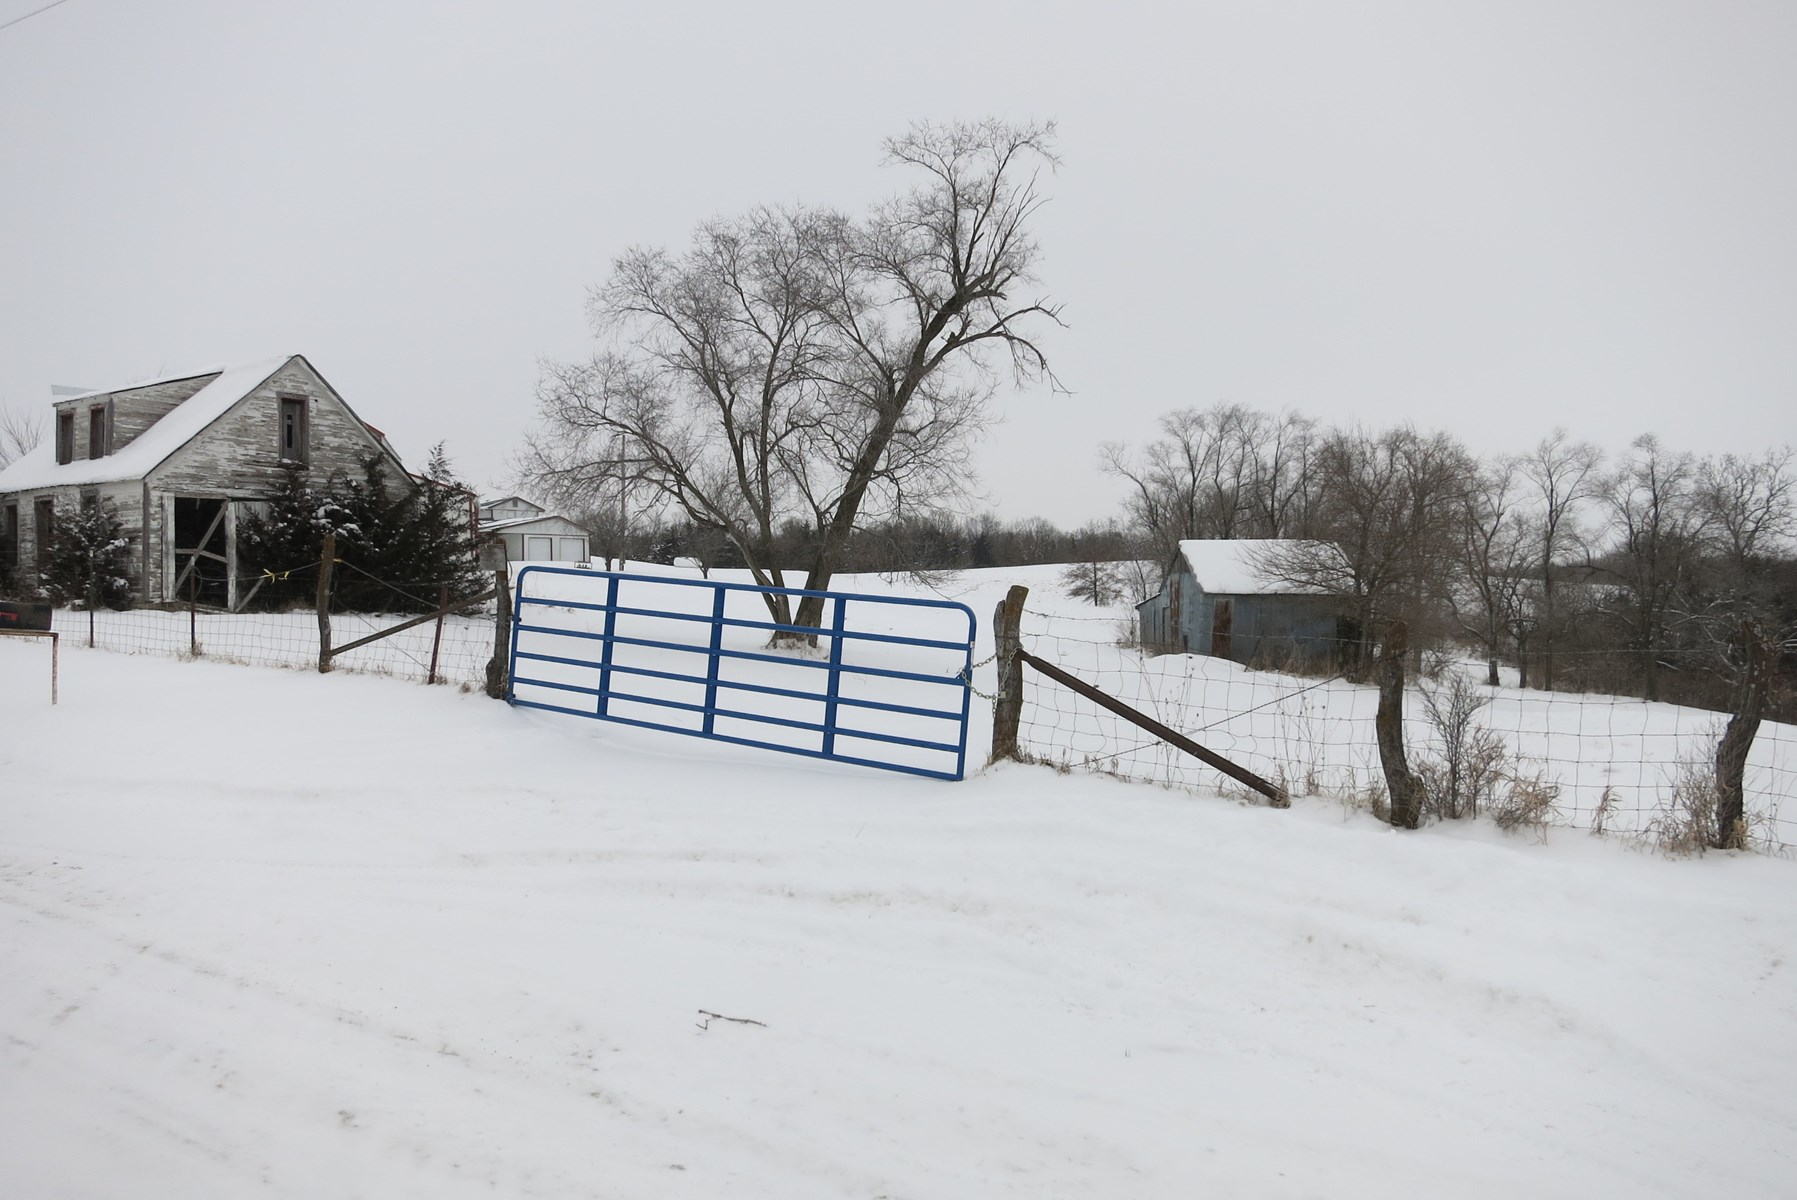 For Sale 140 Acre m/l NW MO Hunting Farm